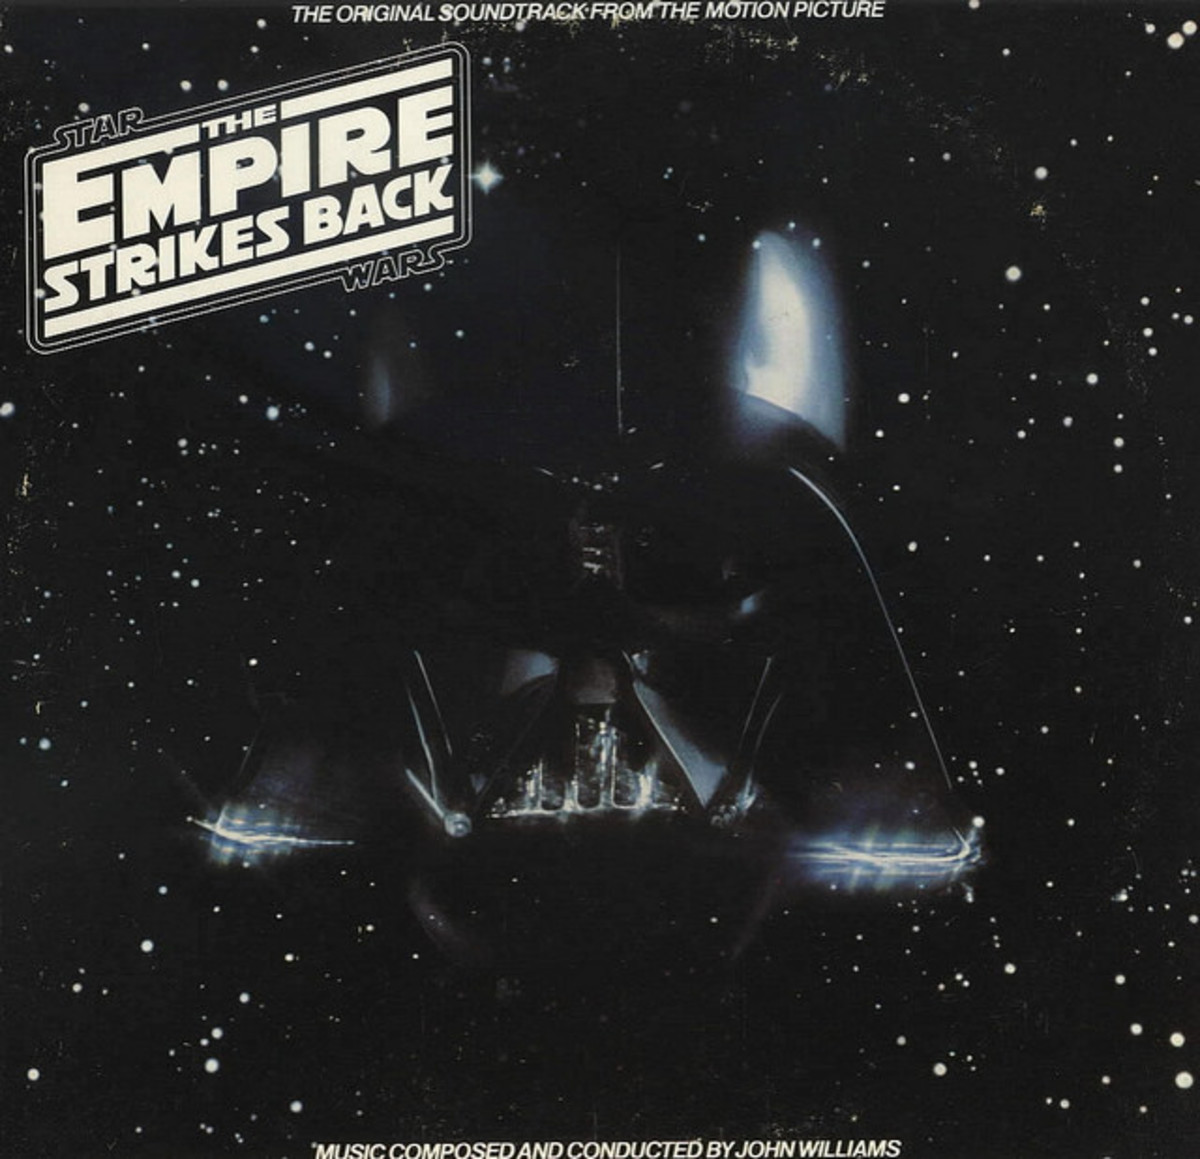 "Star Wars ""The Empire Strikes Back"" RSO Records RS-2-4201 2 12"" LP Vinyl Record Set, US Pressing (1980) John Williams Conducts the London Symphony Orchestra"